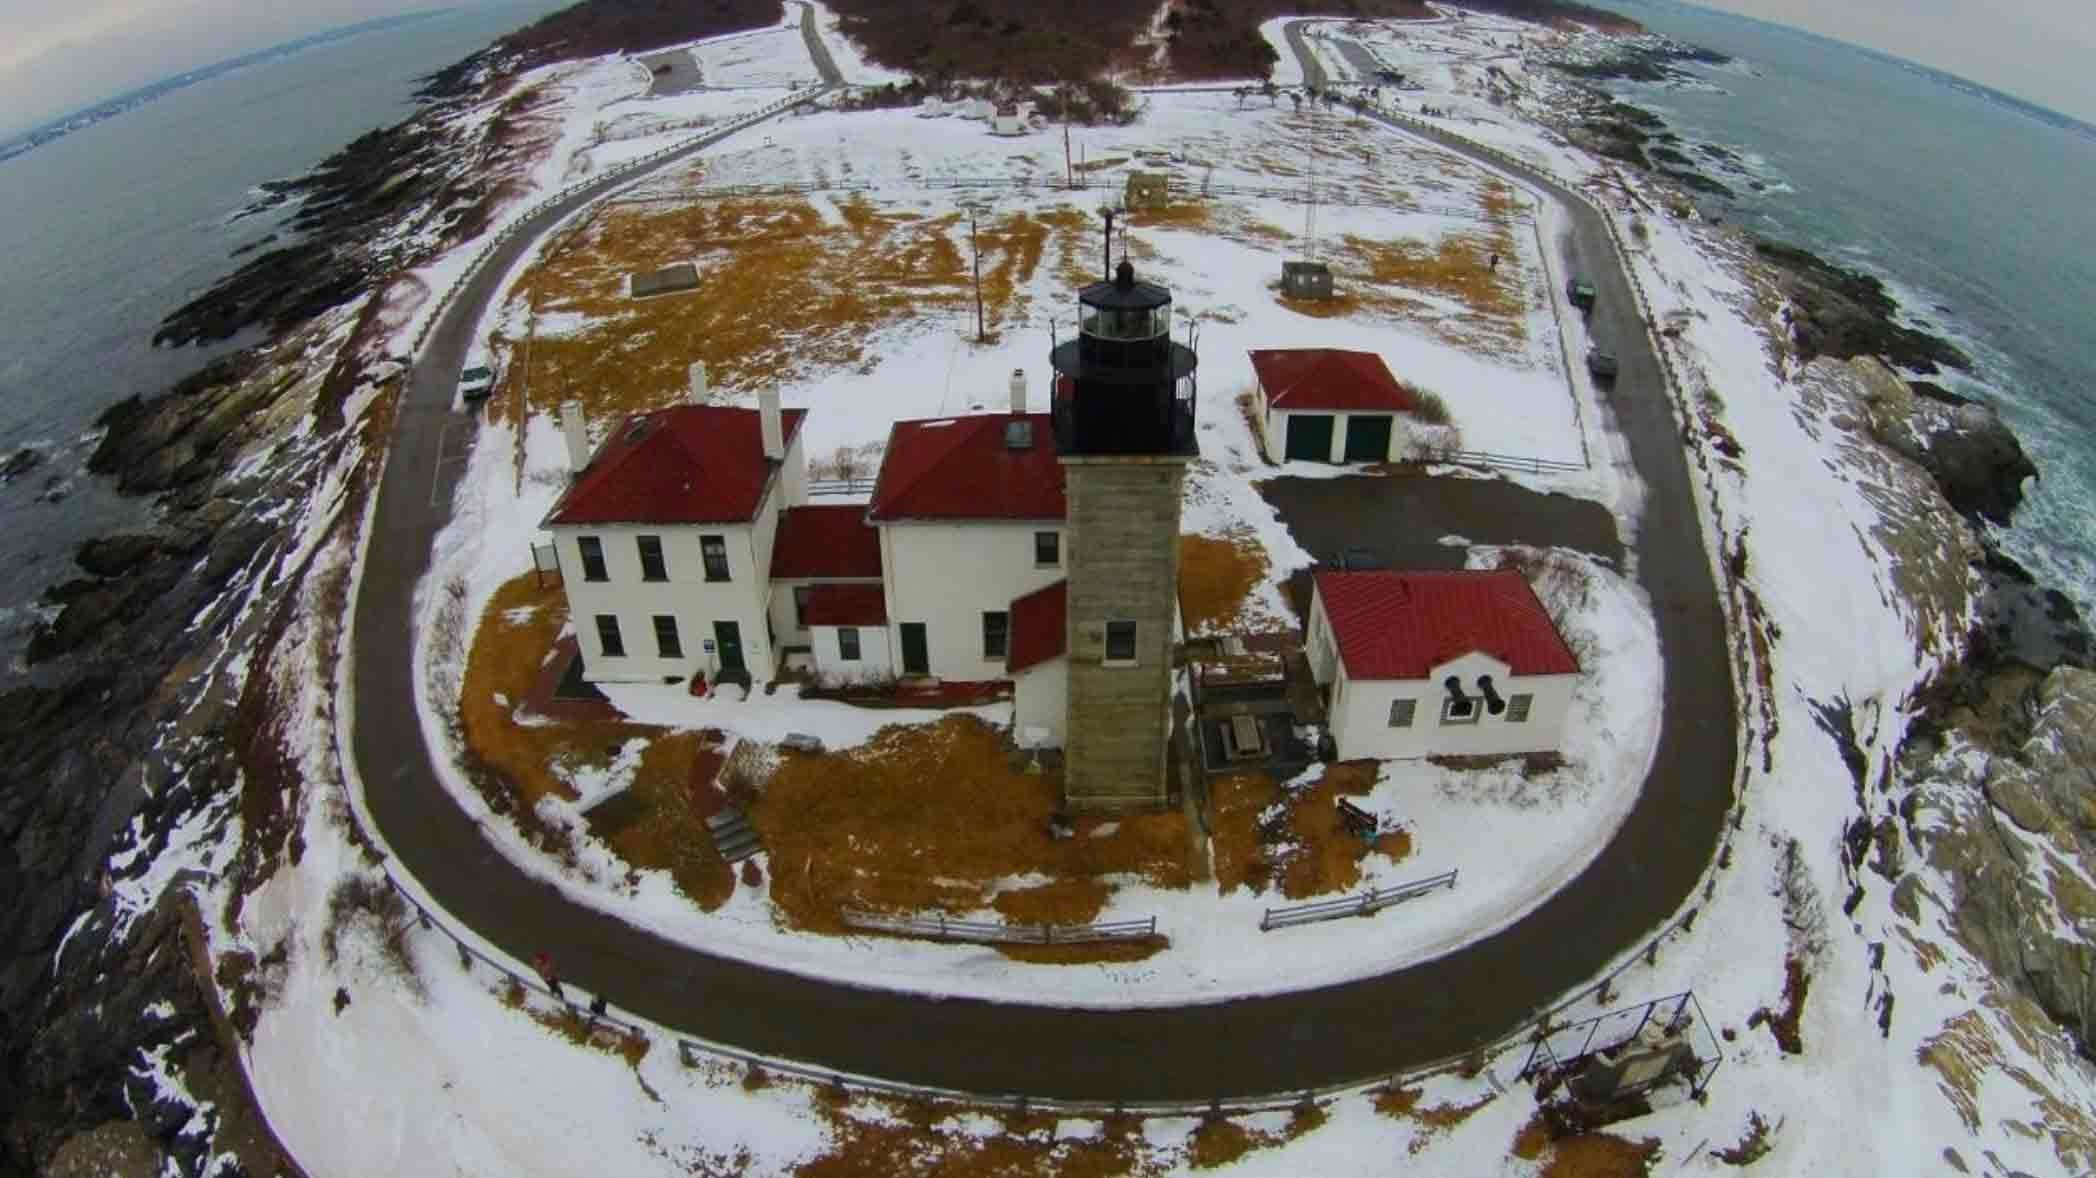 Erosion, Extreme Weather and Climate Change Force Closure of Road to Historic Rhode Island Lighthouse